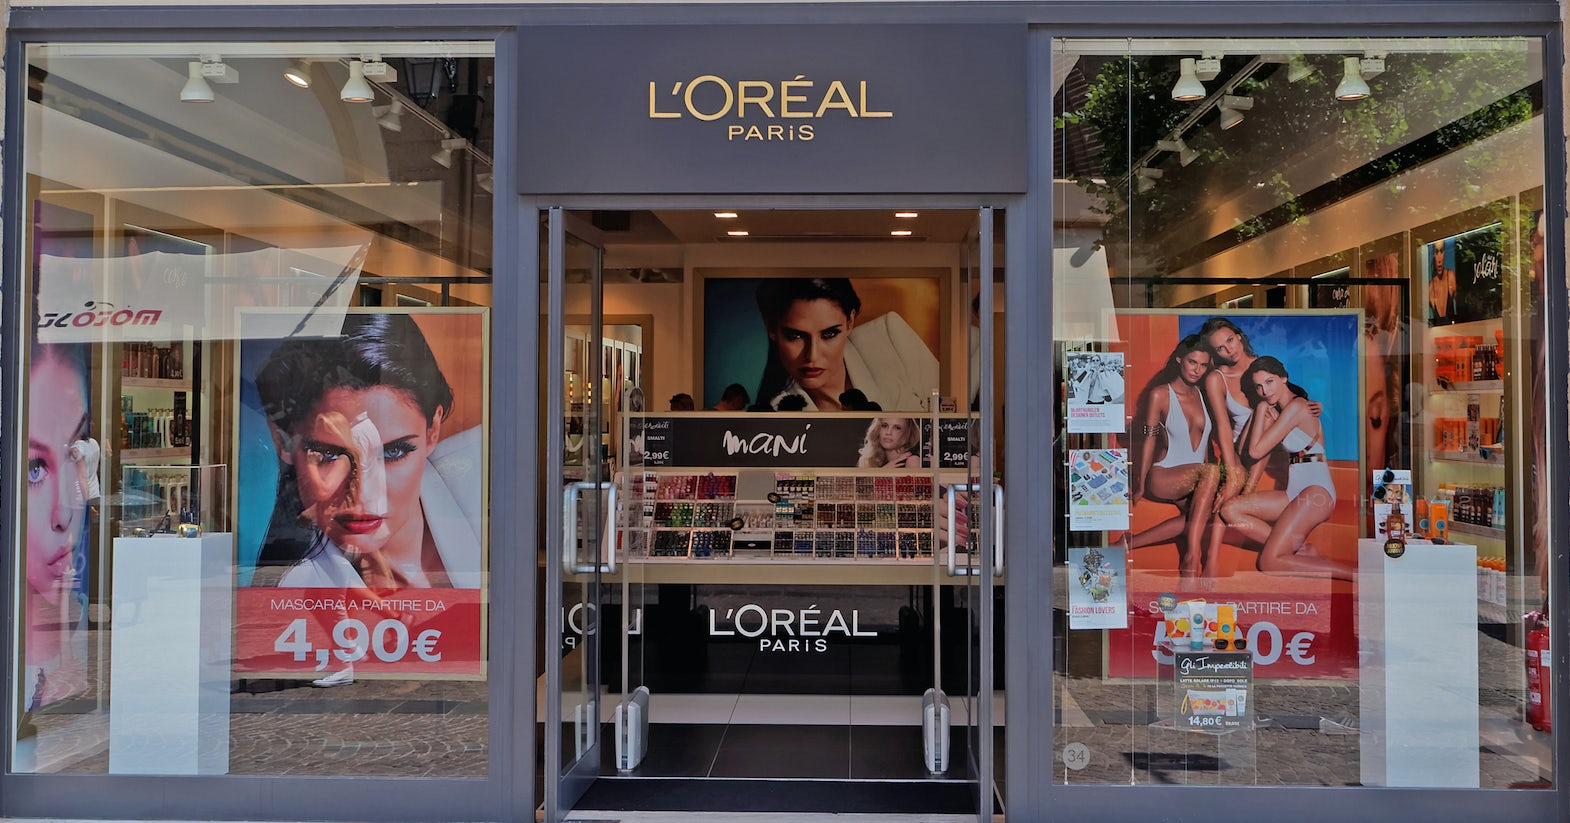 L'Oreal Store Front   Source: Shutterstock